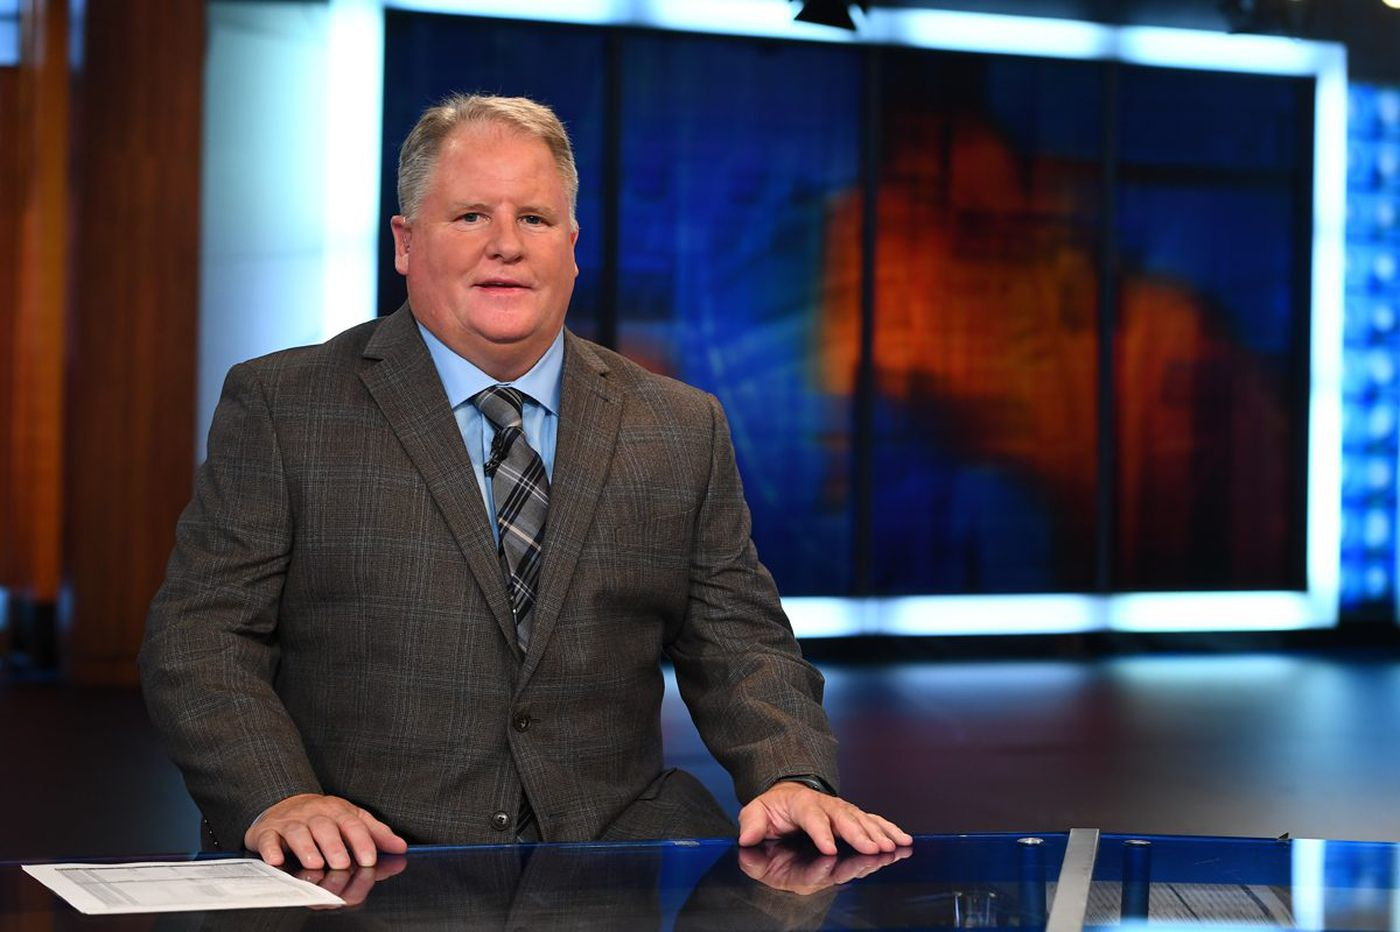 It doesn't look as if Chip Kelly's ESPN stint will be that long